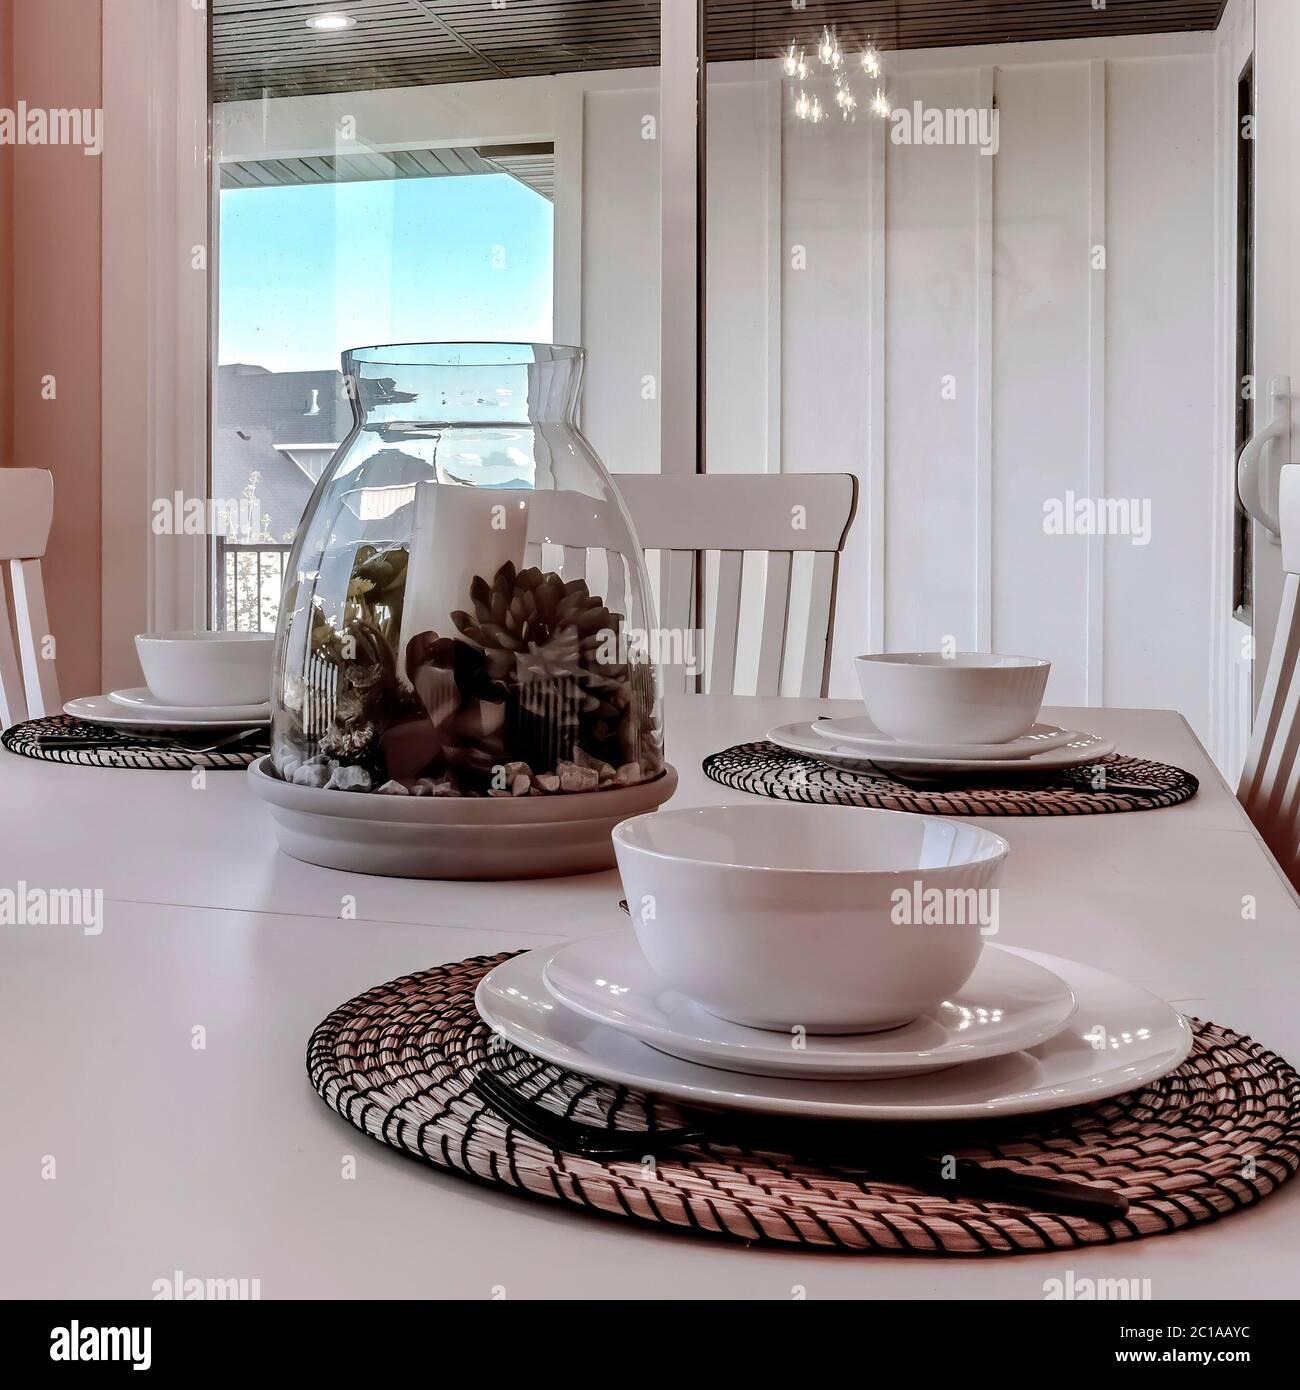 Square Dining Table With Chairs And Tableware Arranged Around A Decorative Centerpiece Stock Photo Alamy